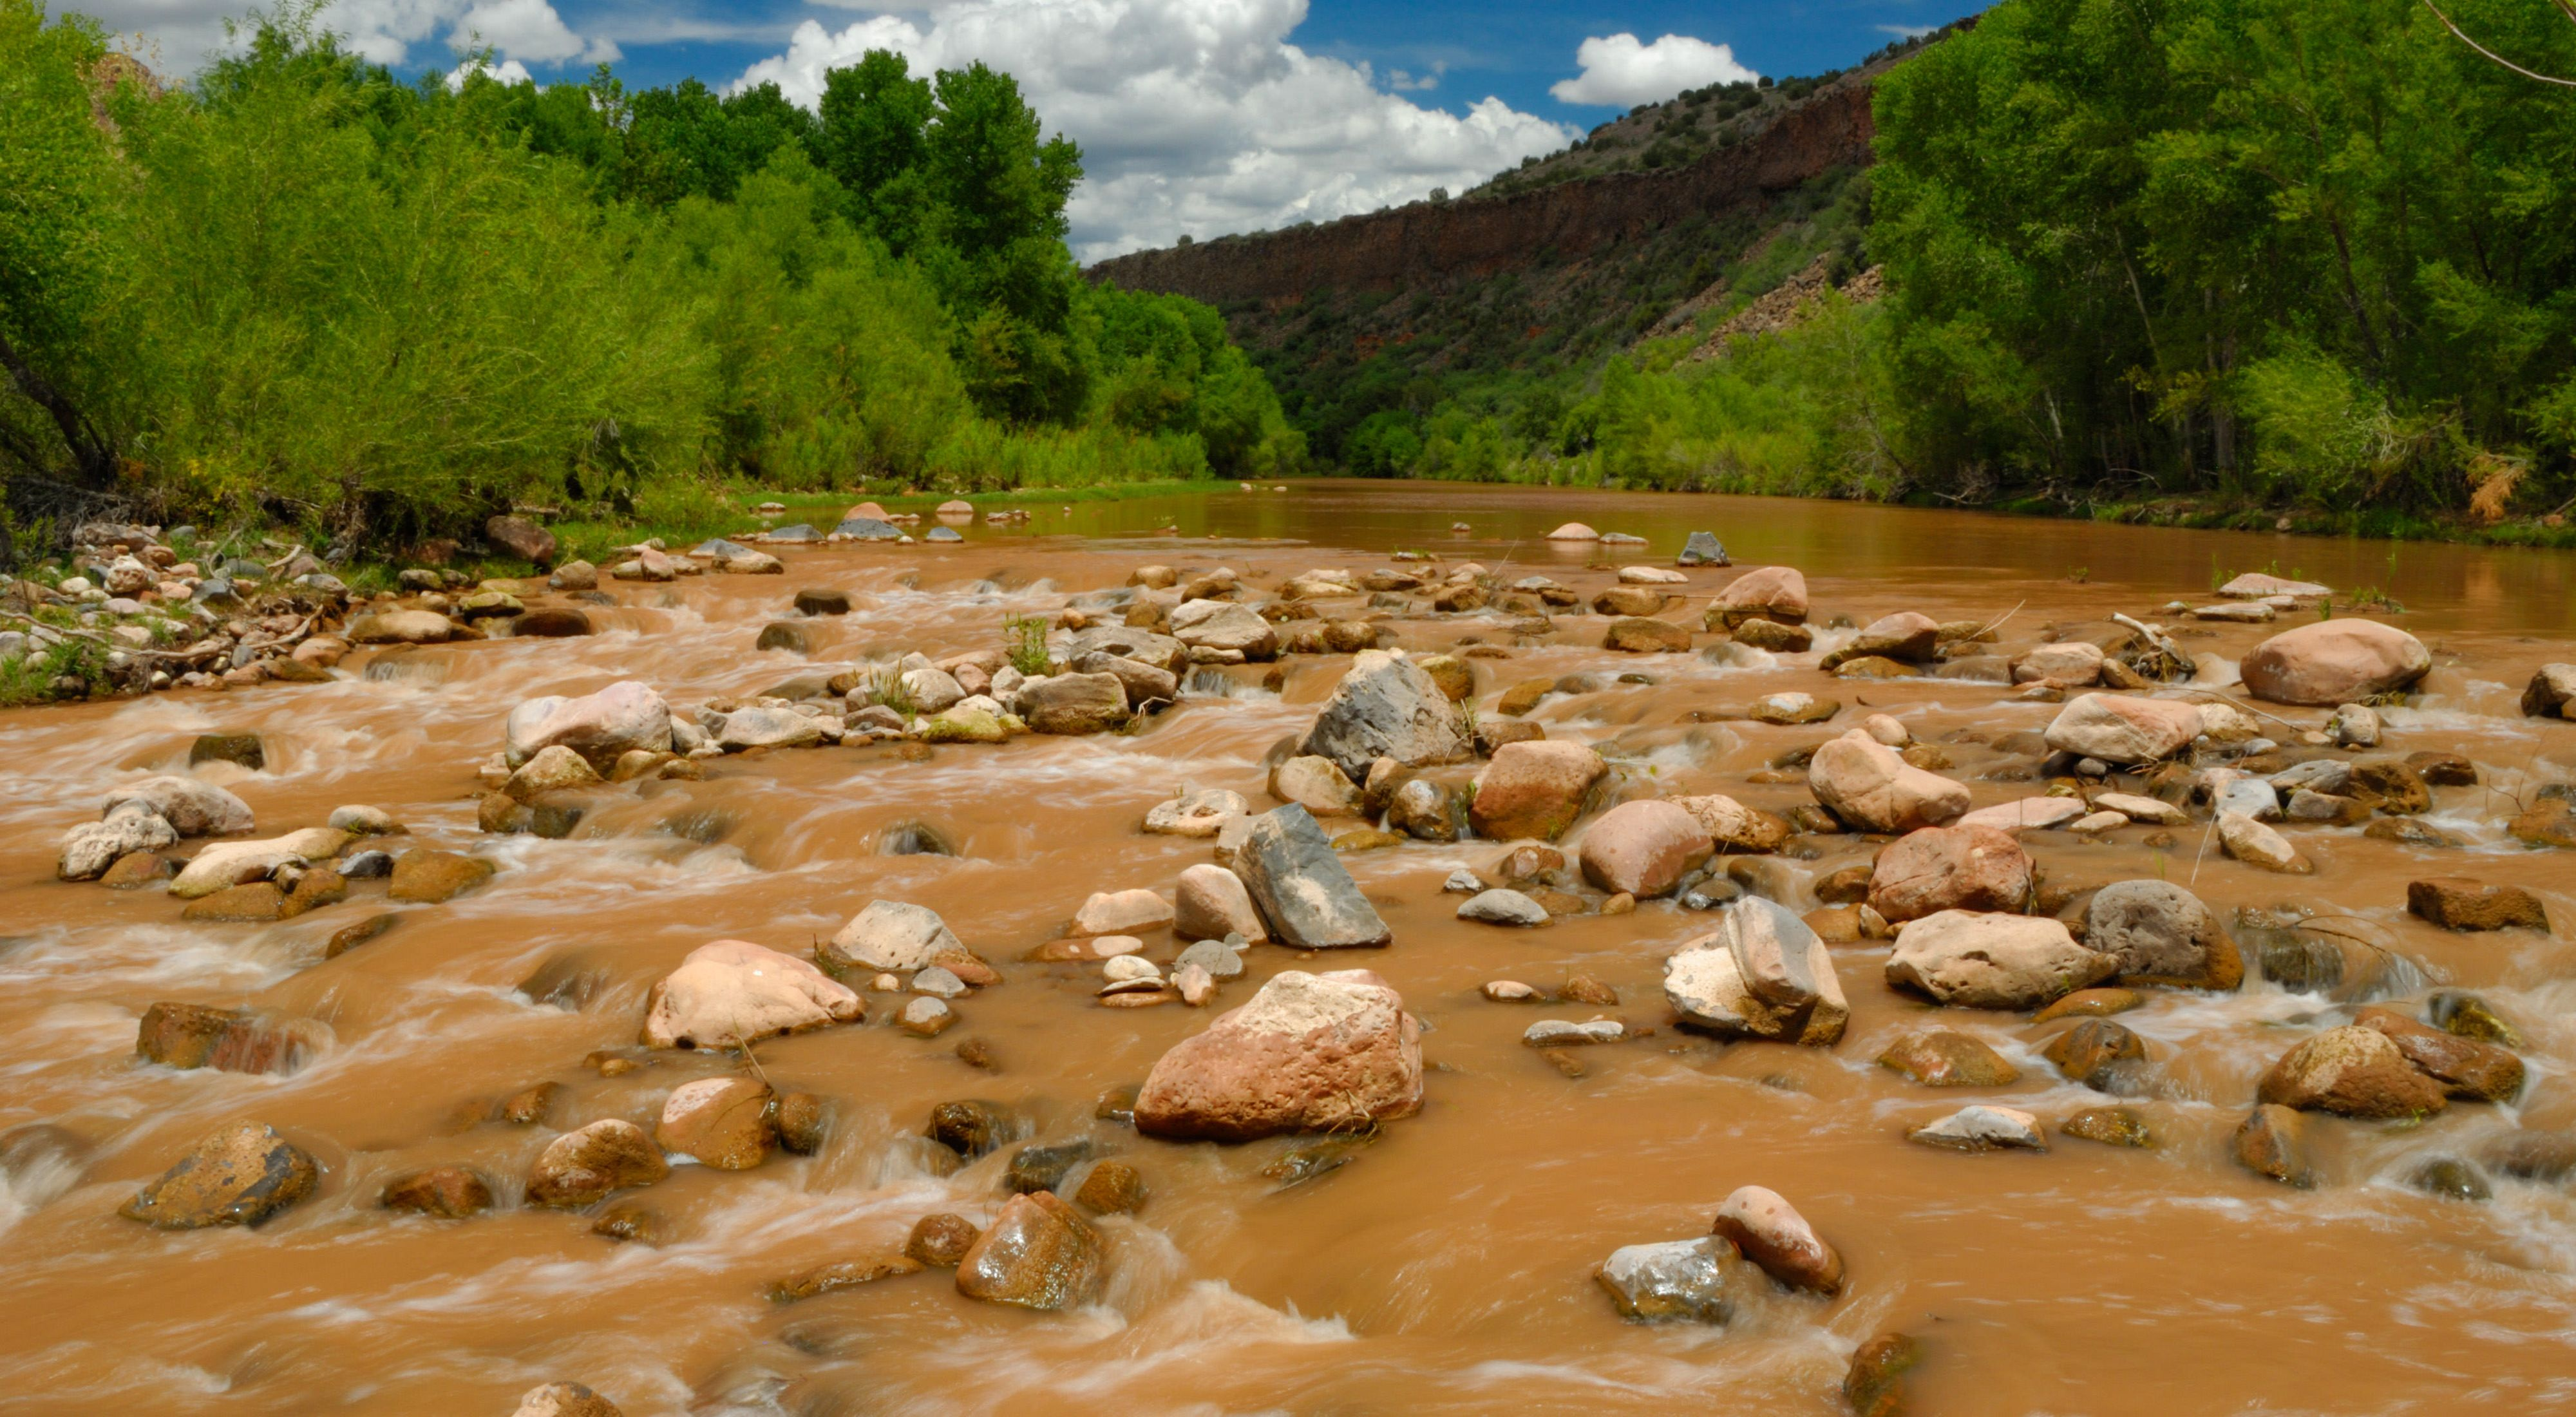 Wide-angle view of a fast-moving, but shallow muddy river.